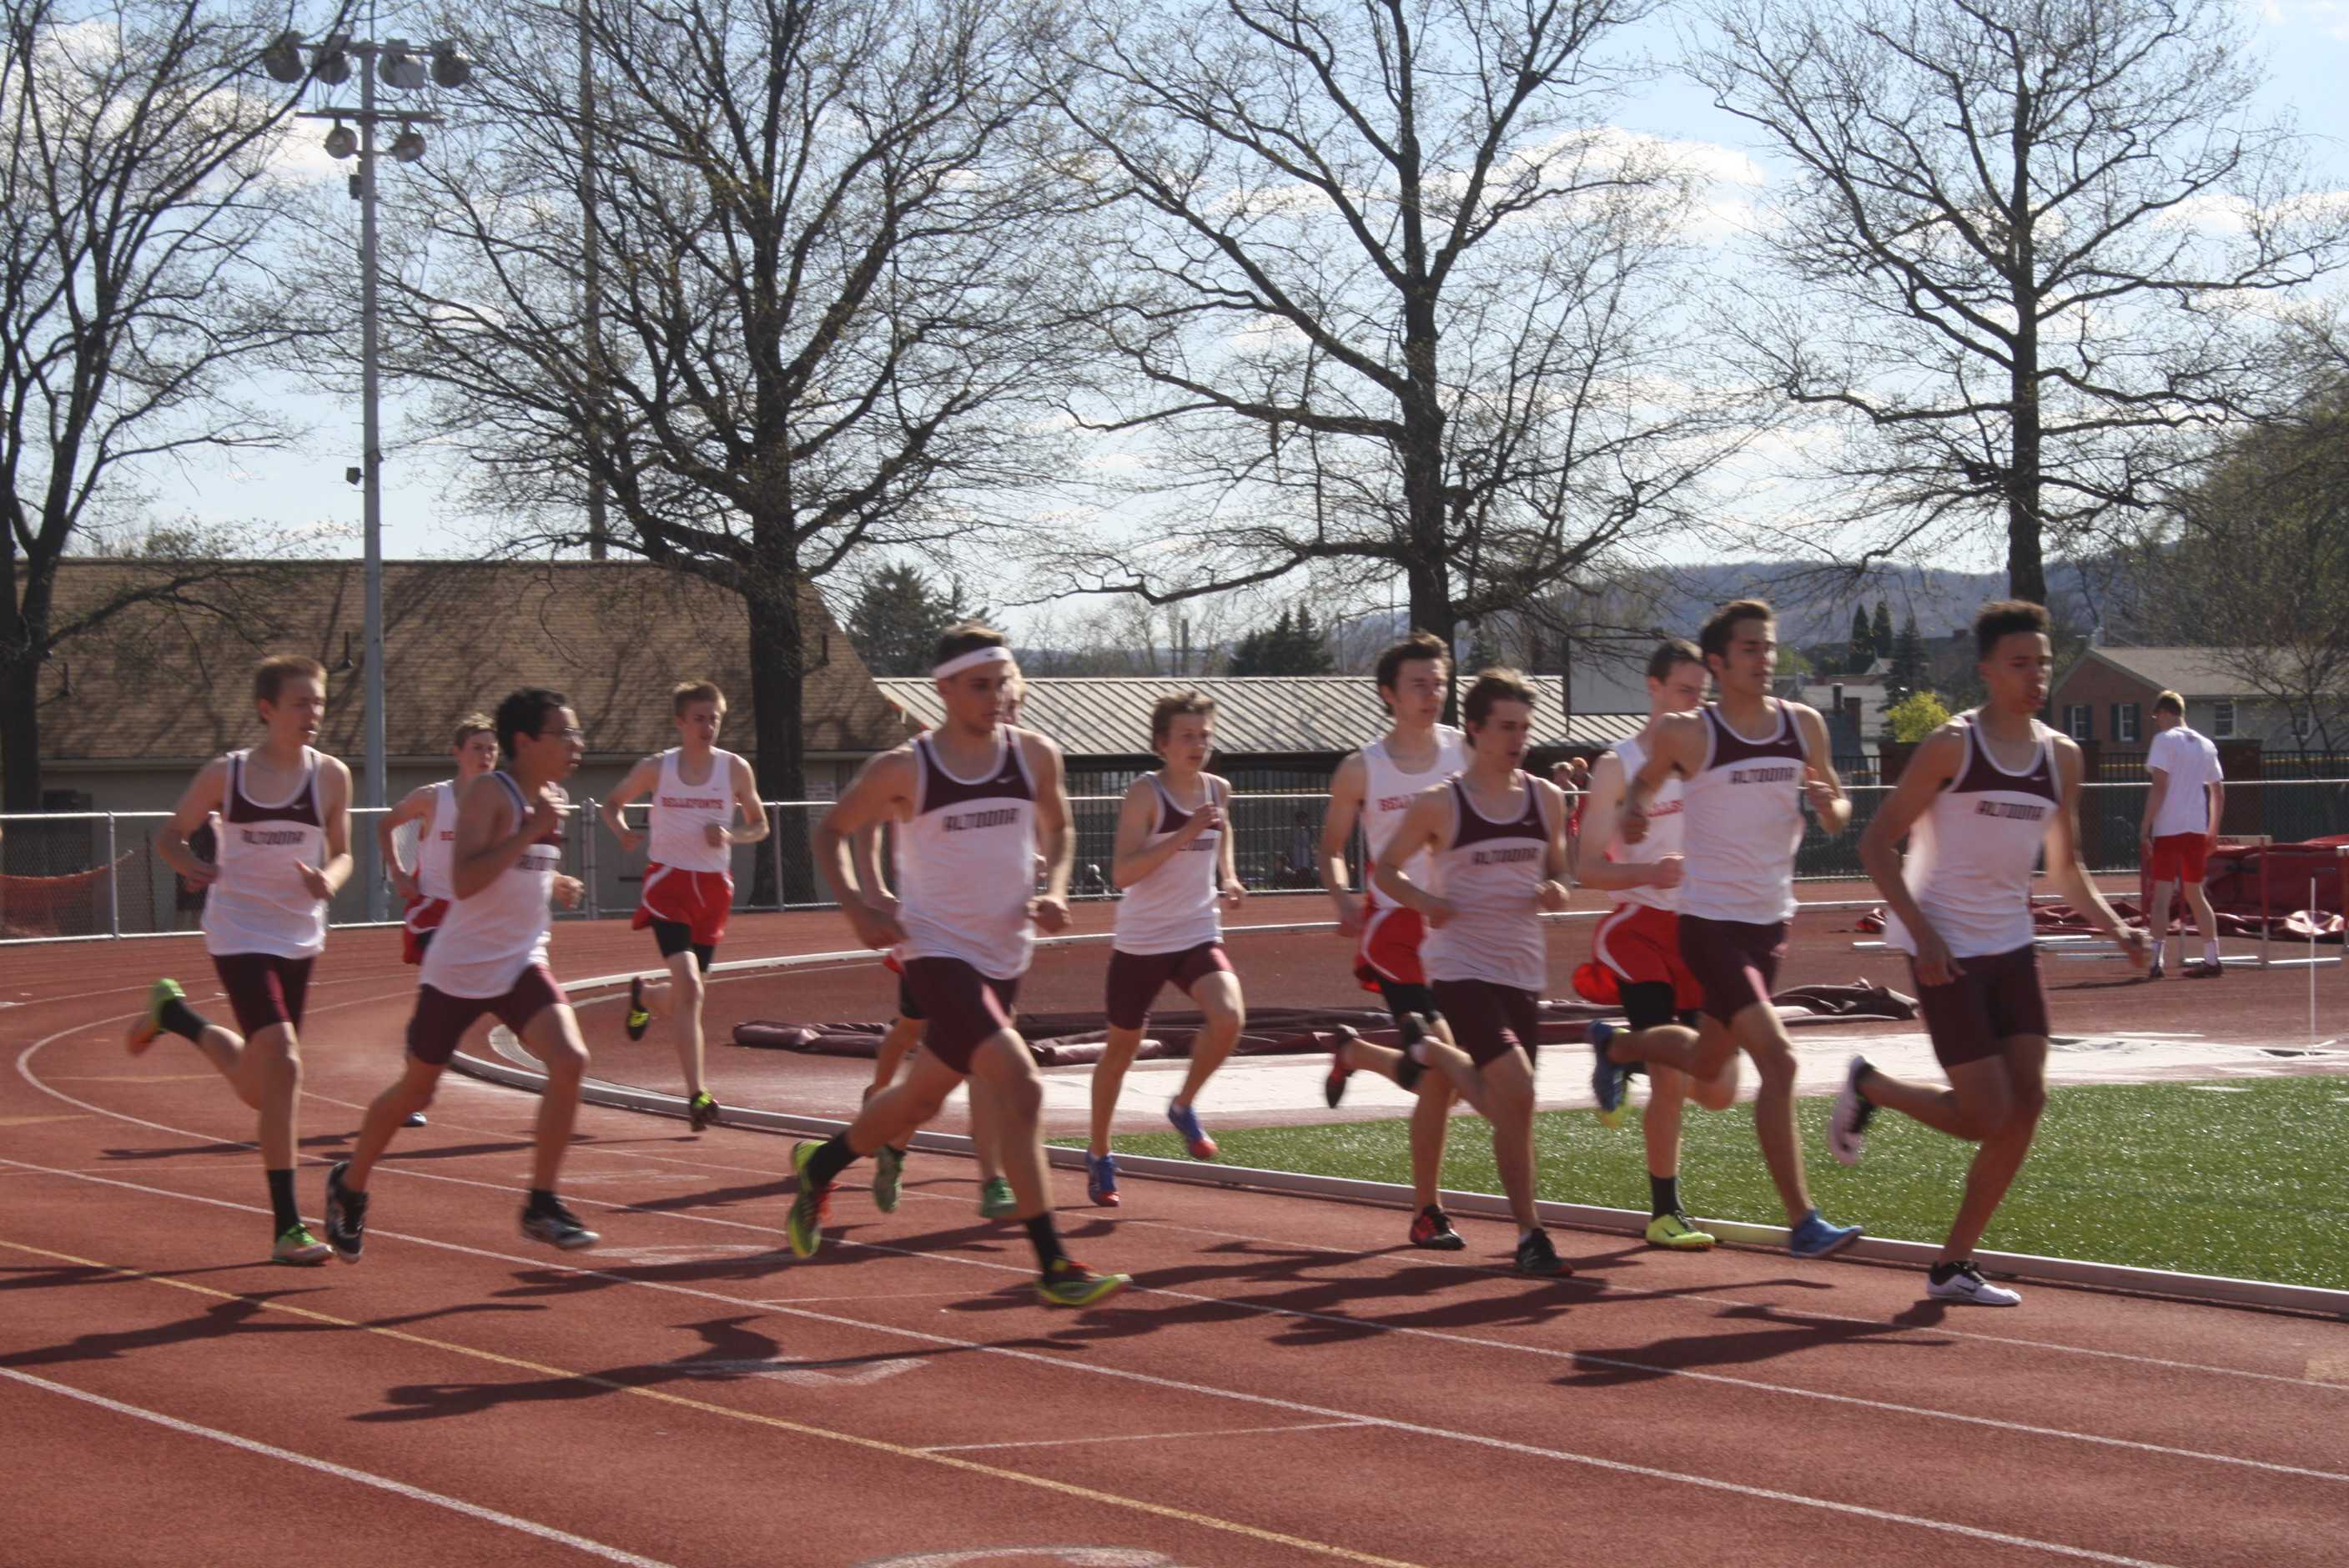 Multiple Altoona students participate in a track meet at Manson Park.